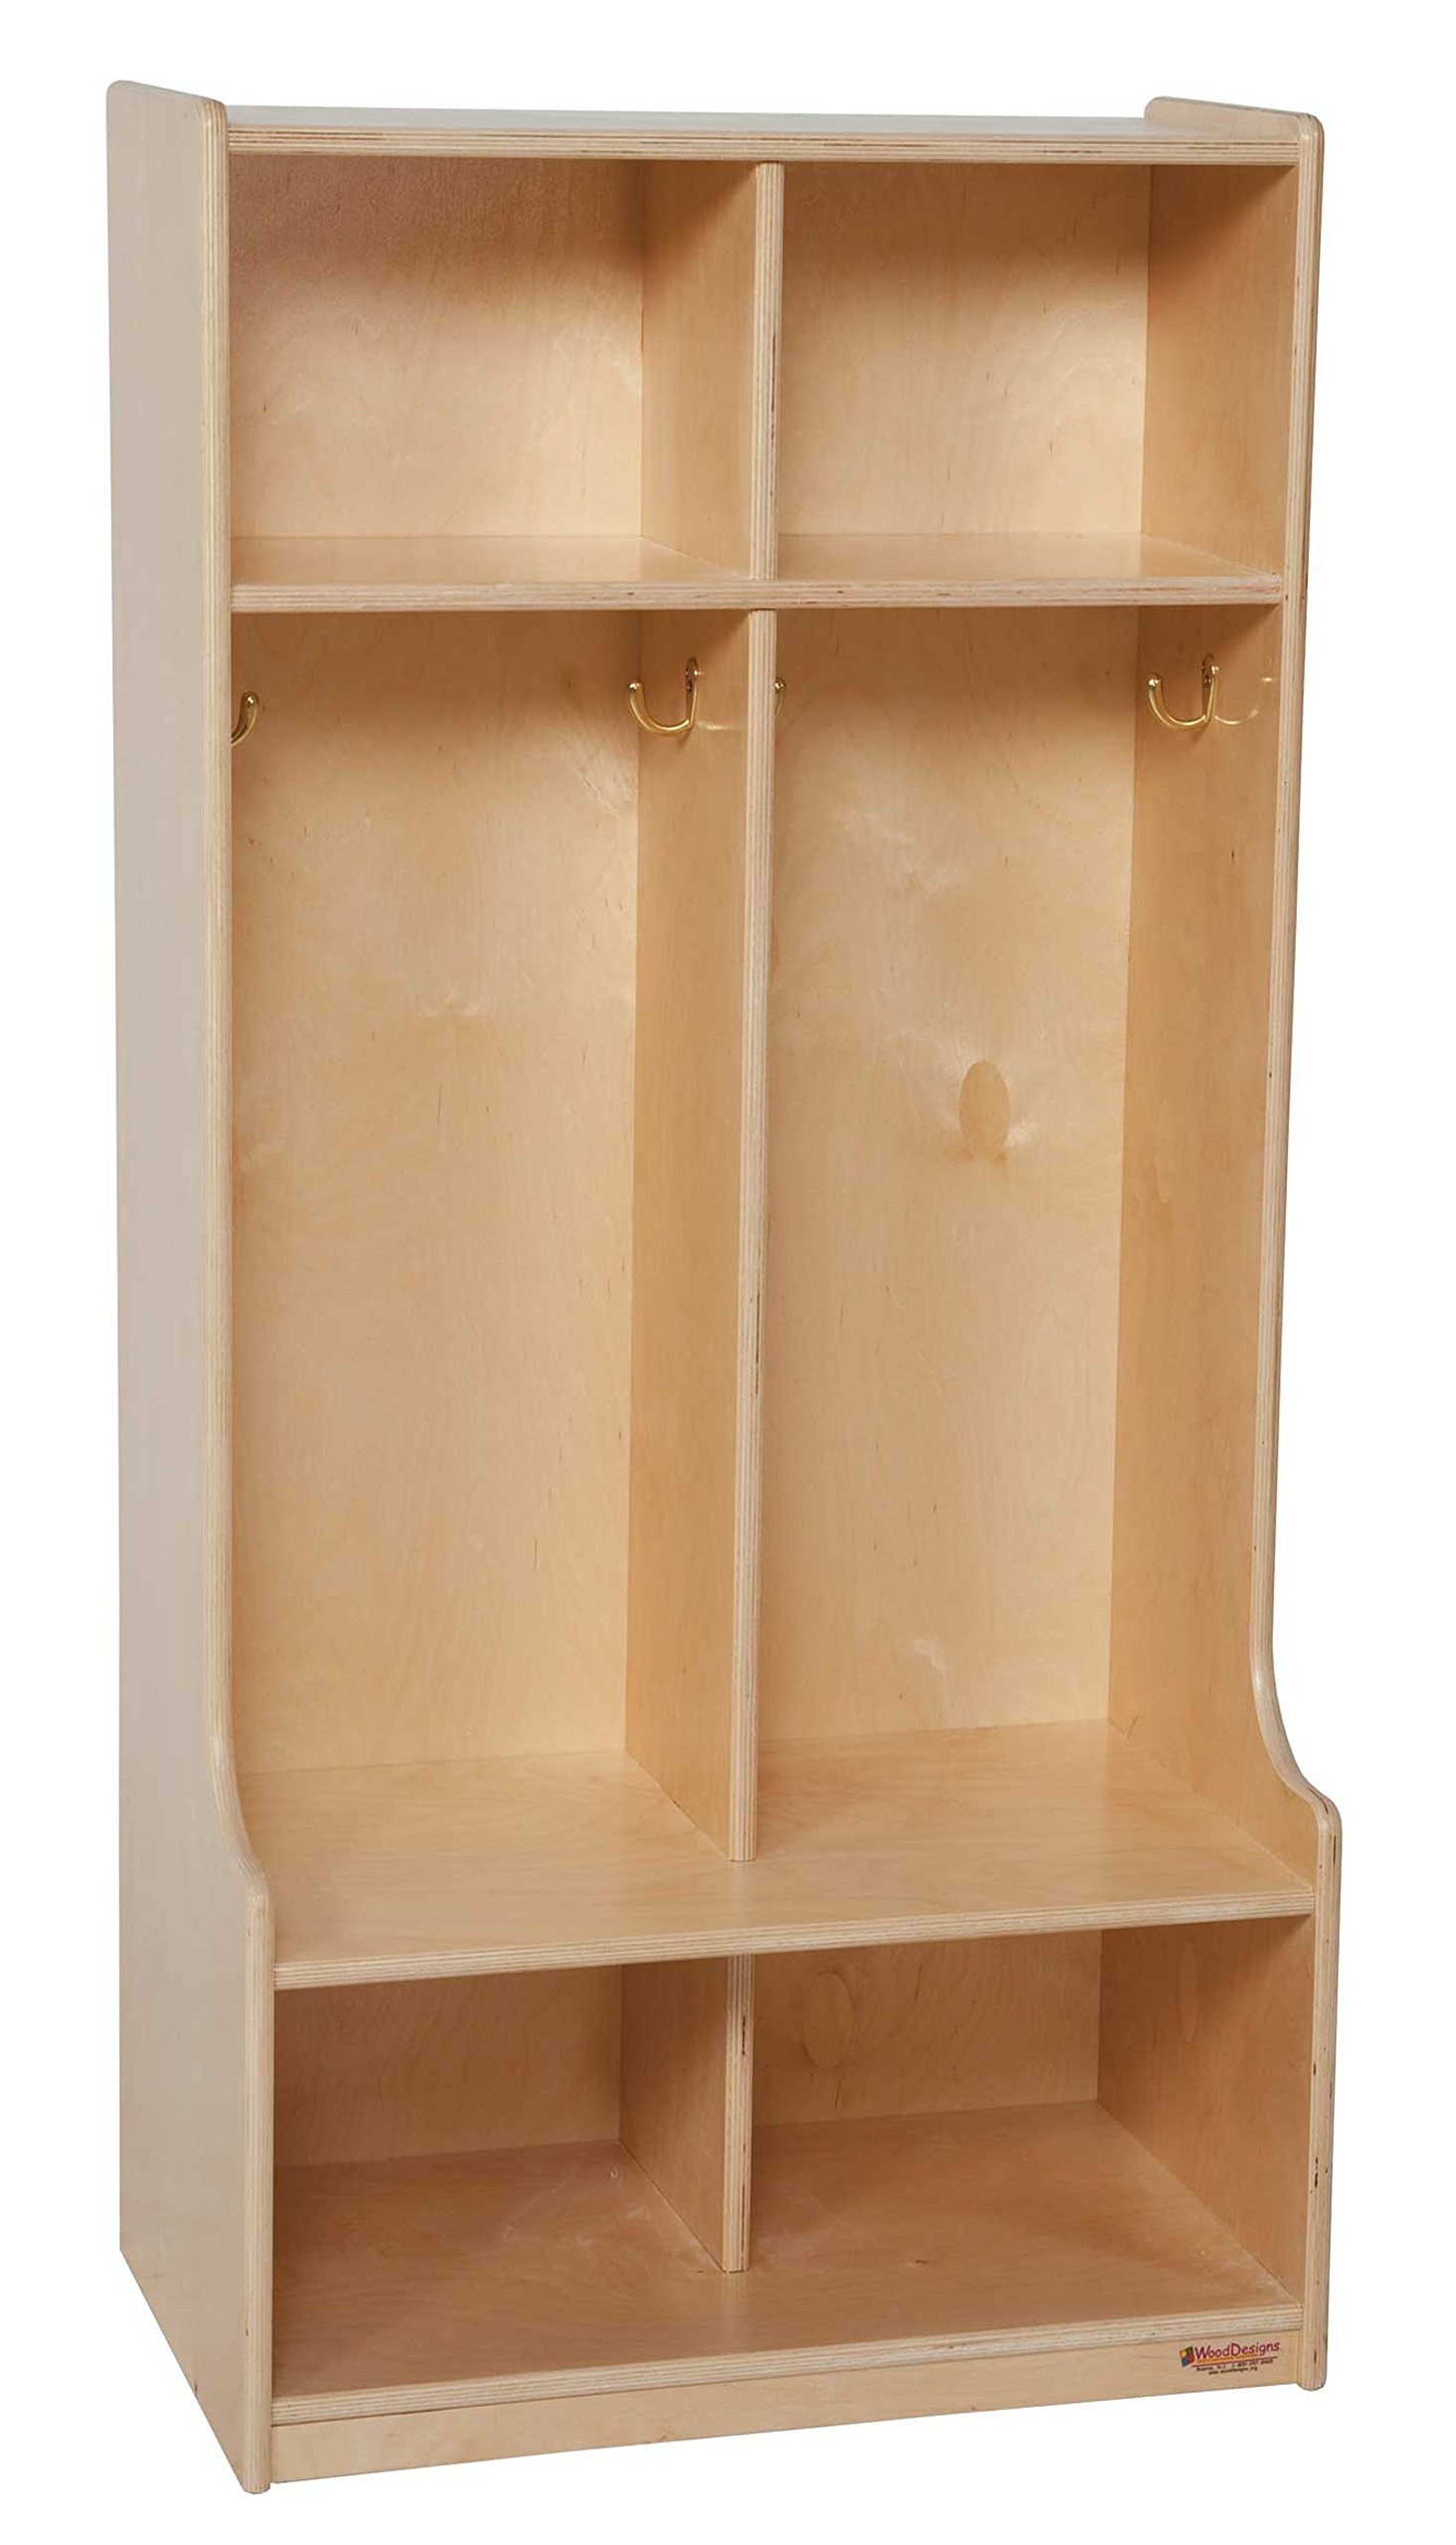 Wood Designs WD52400 2 Section Locker by Wood Designs